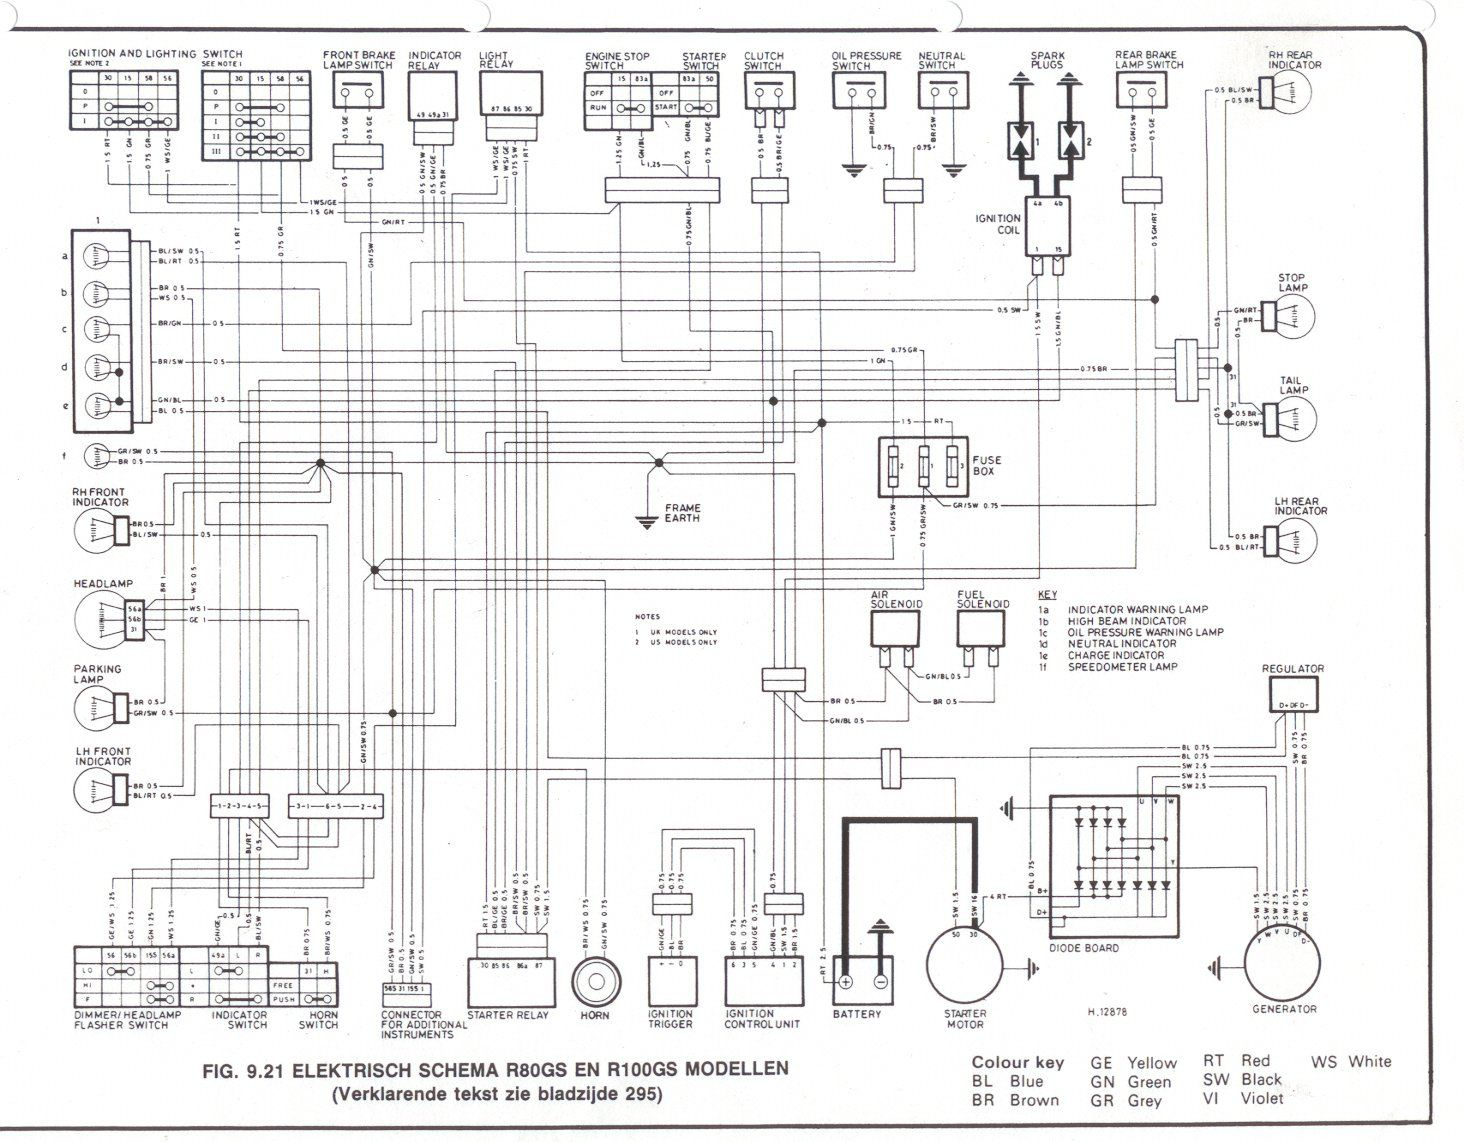 2bafb06a900ec9fa30bfda8cc9ecda05 29864d1315673496 1994 325i english fuse diagram wanted e36 325i 1993 R100 at creativeand.co